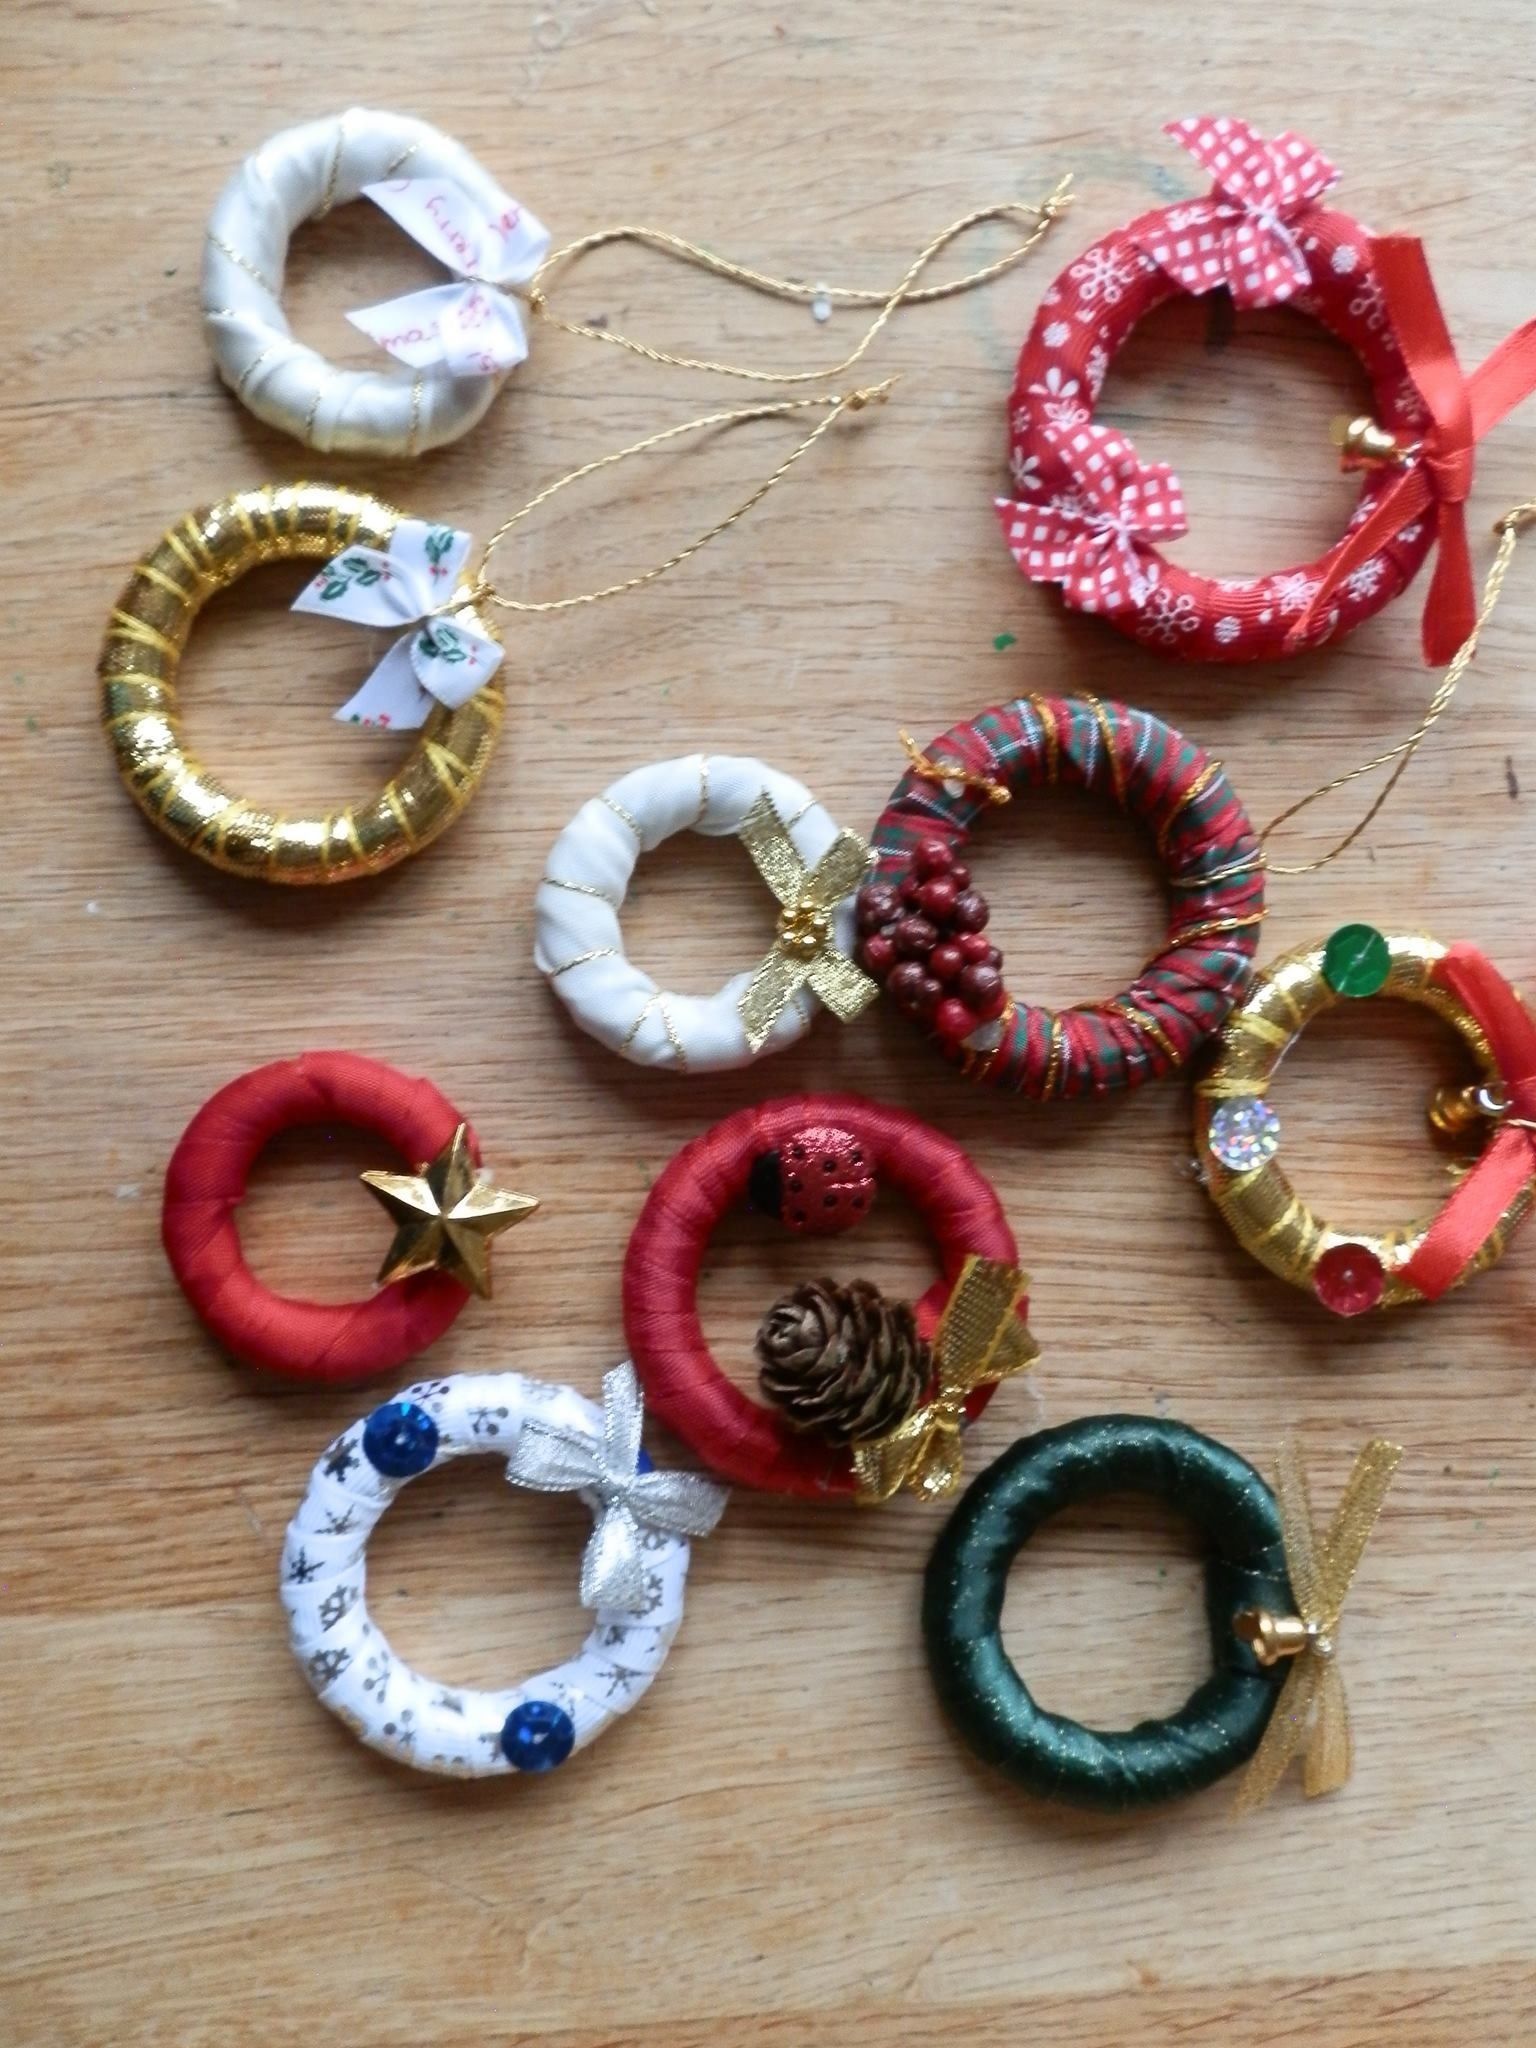 Mini Christmas Wreaths Using Wooden Curtain Rings Diy Christmas